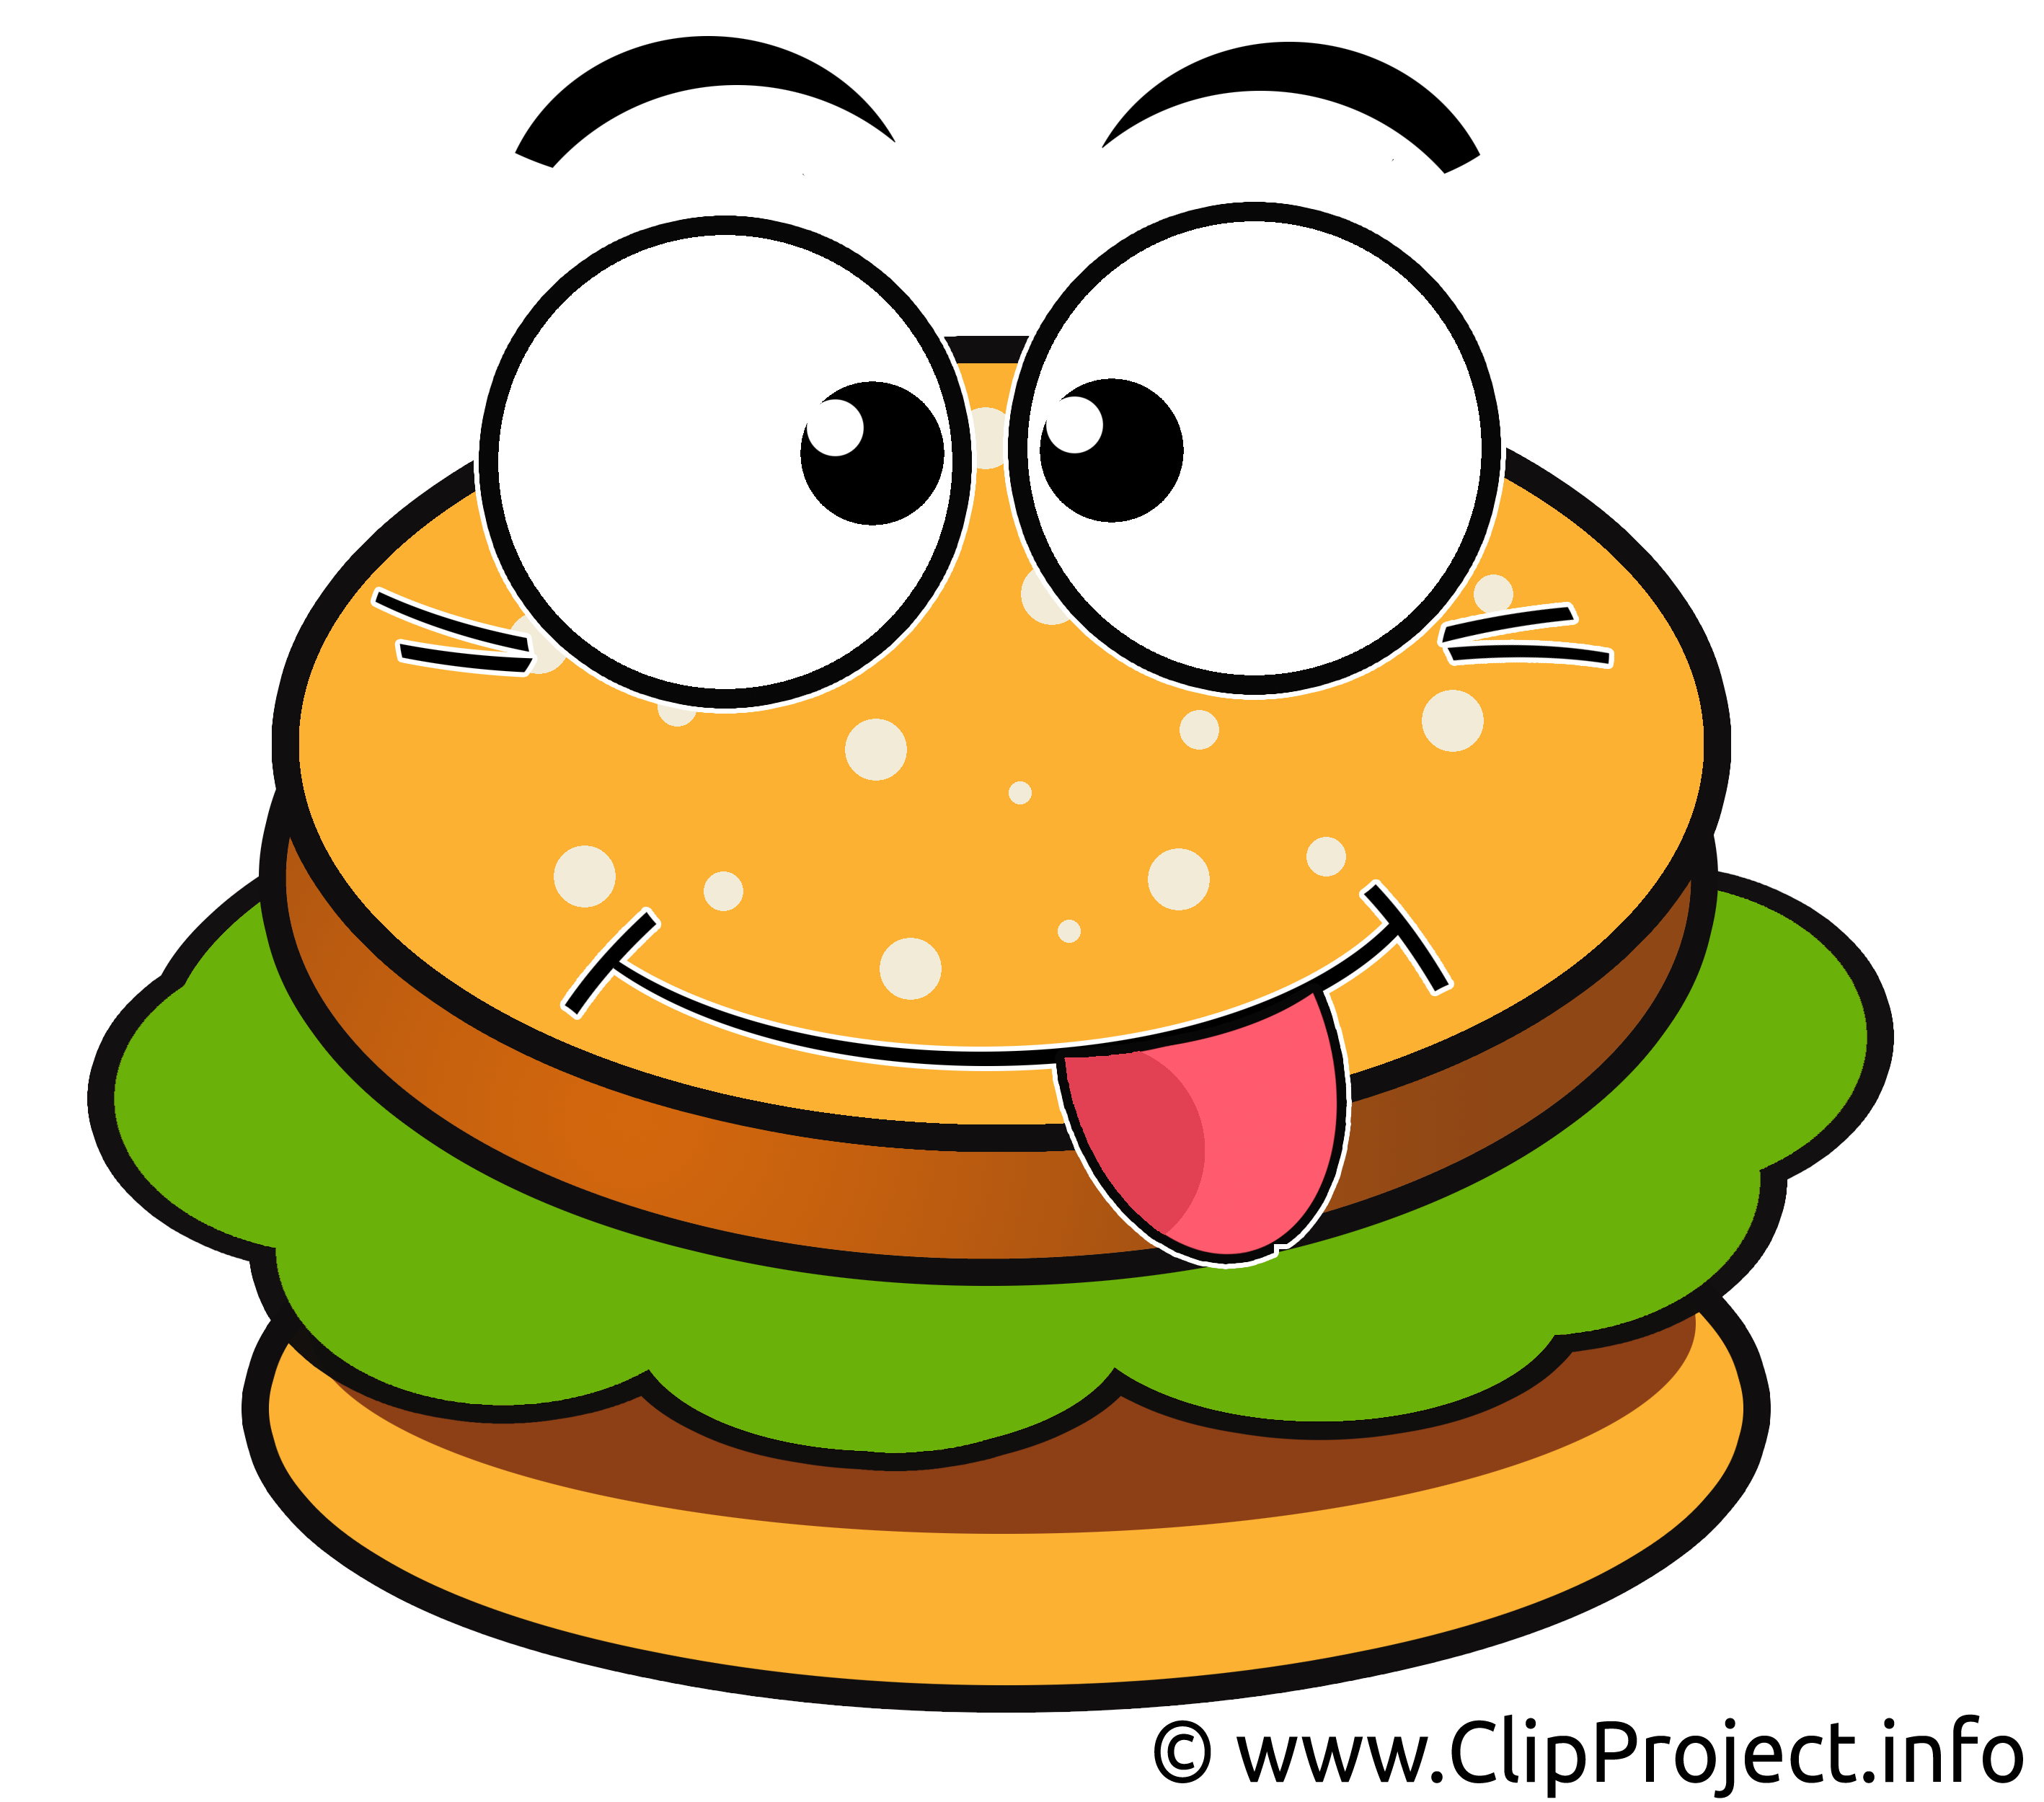 Smiley clipart hamburger Cartoon Hamburger art clipart burger